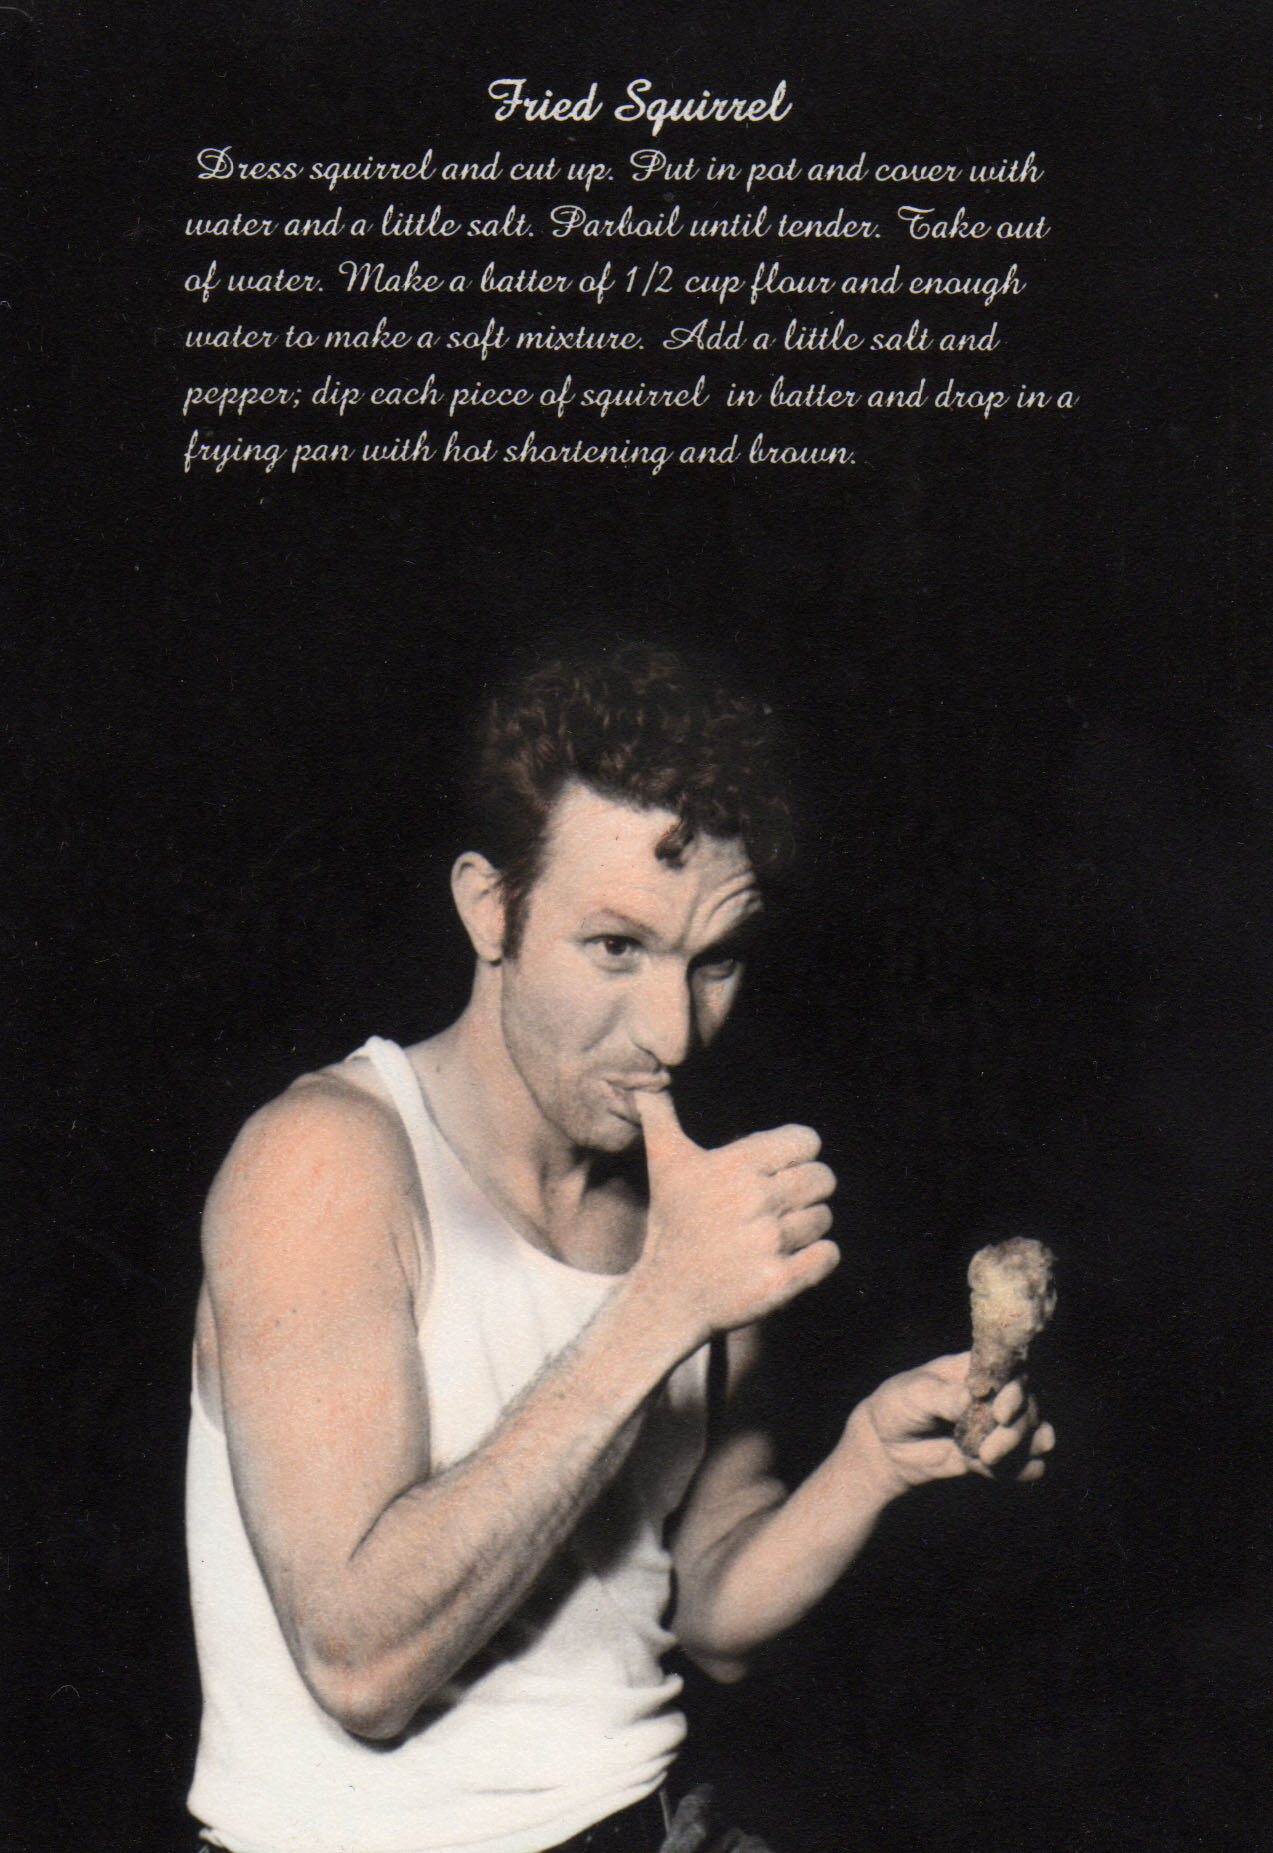 Bobby enjoying some fried squirrel in a hand-colored silver gelatin print from 1999.